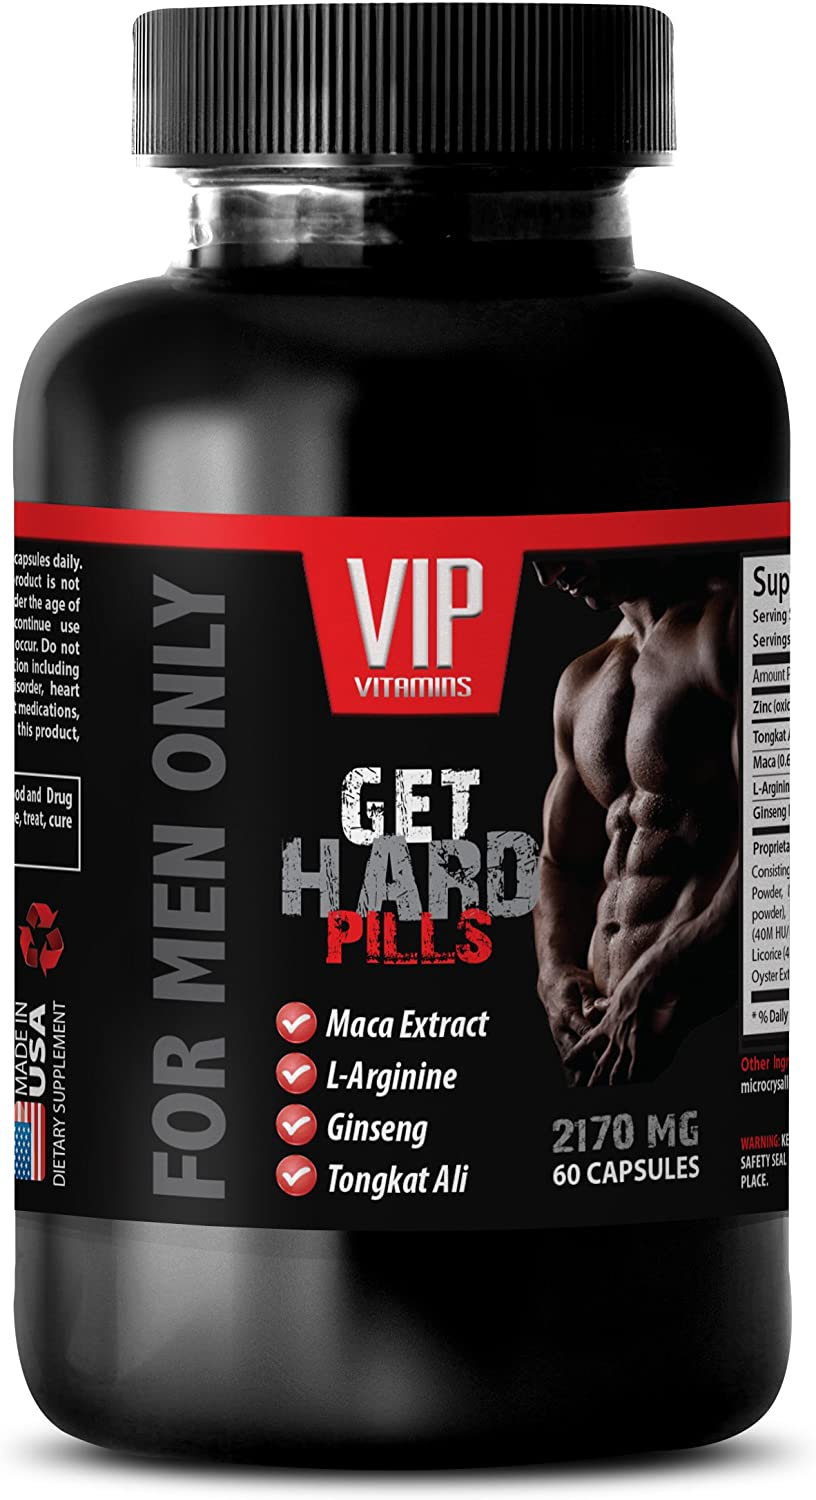 Increase Energy Levels for Men - get Hard Pills (for Men only) - yohimbine Extra Strength - 1 Bottle 60 Capsules: Health & Personal Care